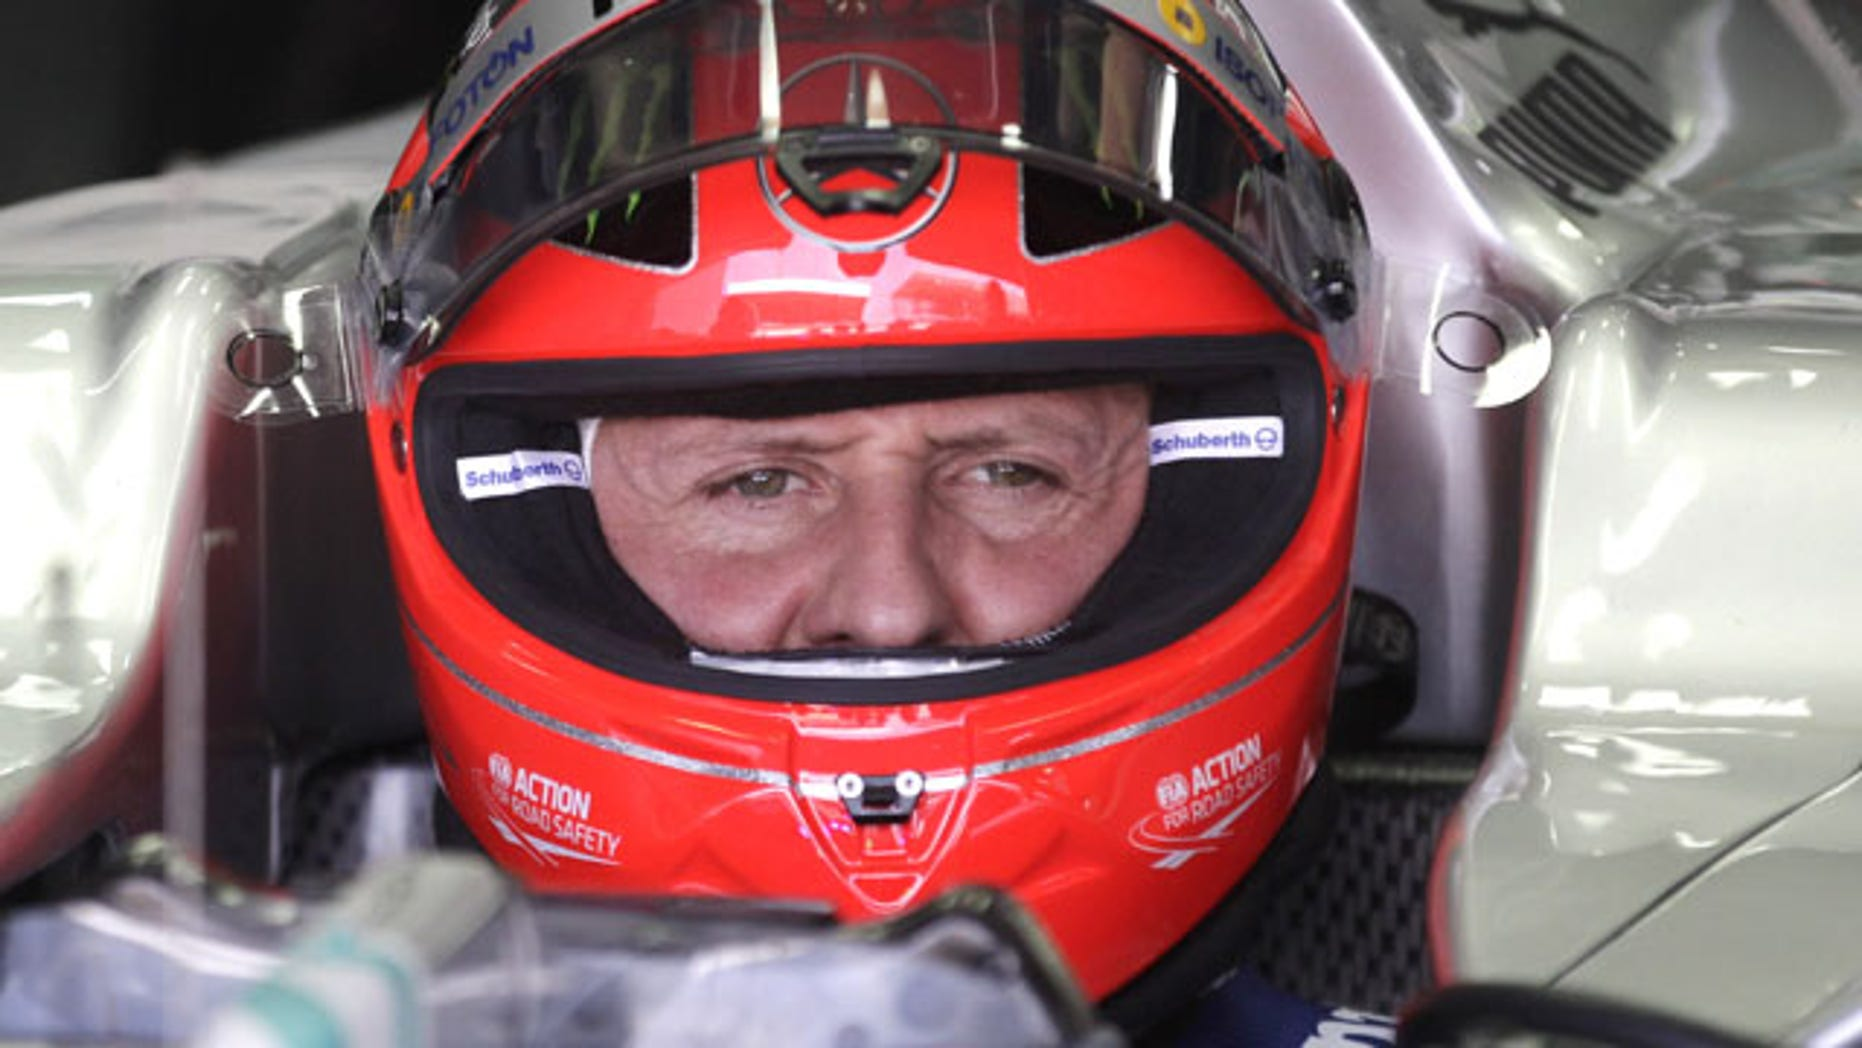 FILE - In this Nov. 23, 2012 file photo, Grand Prix driver Michael Schumacher, of Germany, sits in his car during a free practice at the Interlagos race track in Sao Paulo, Brazil. (AP)